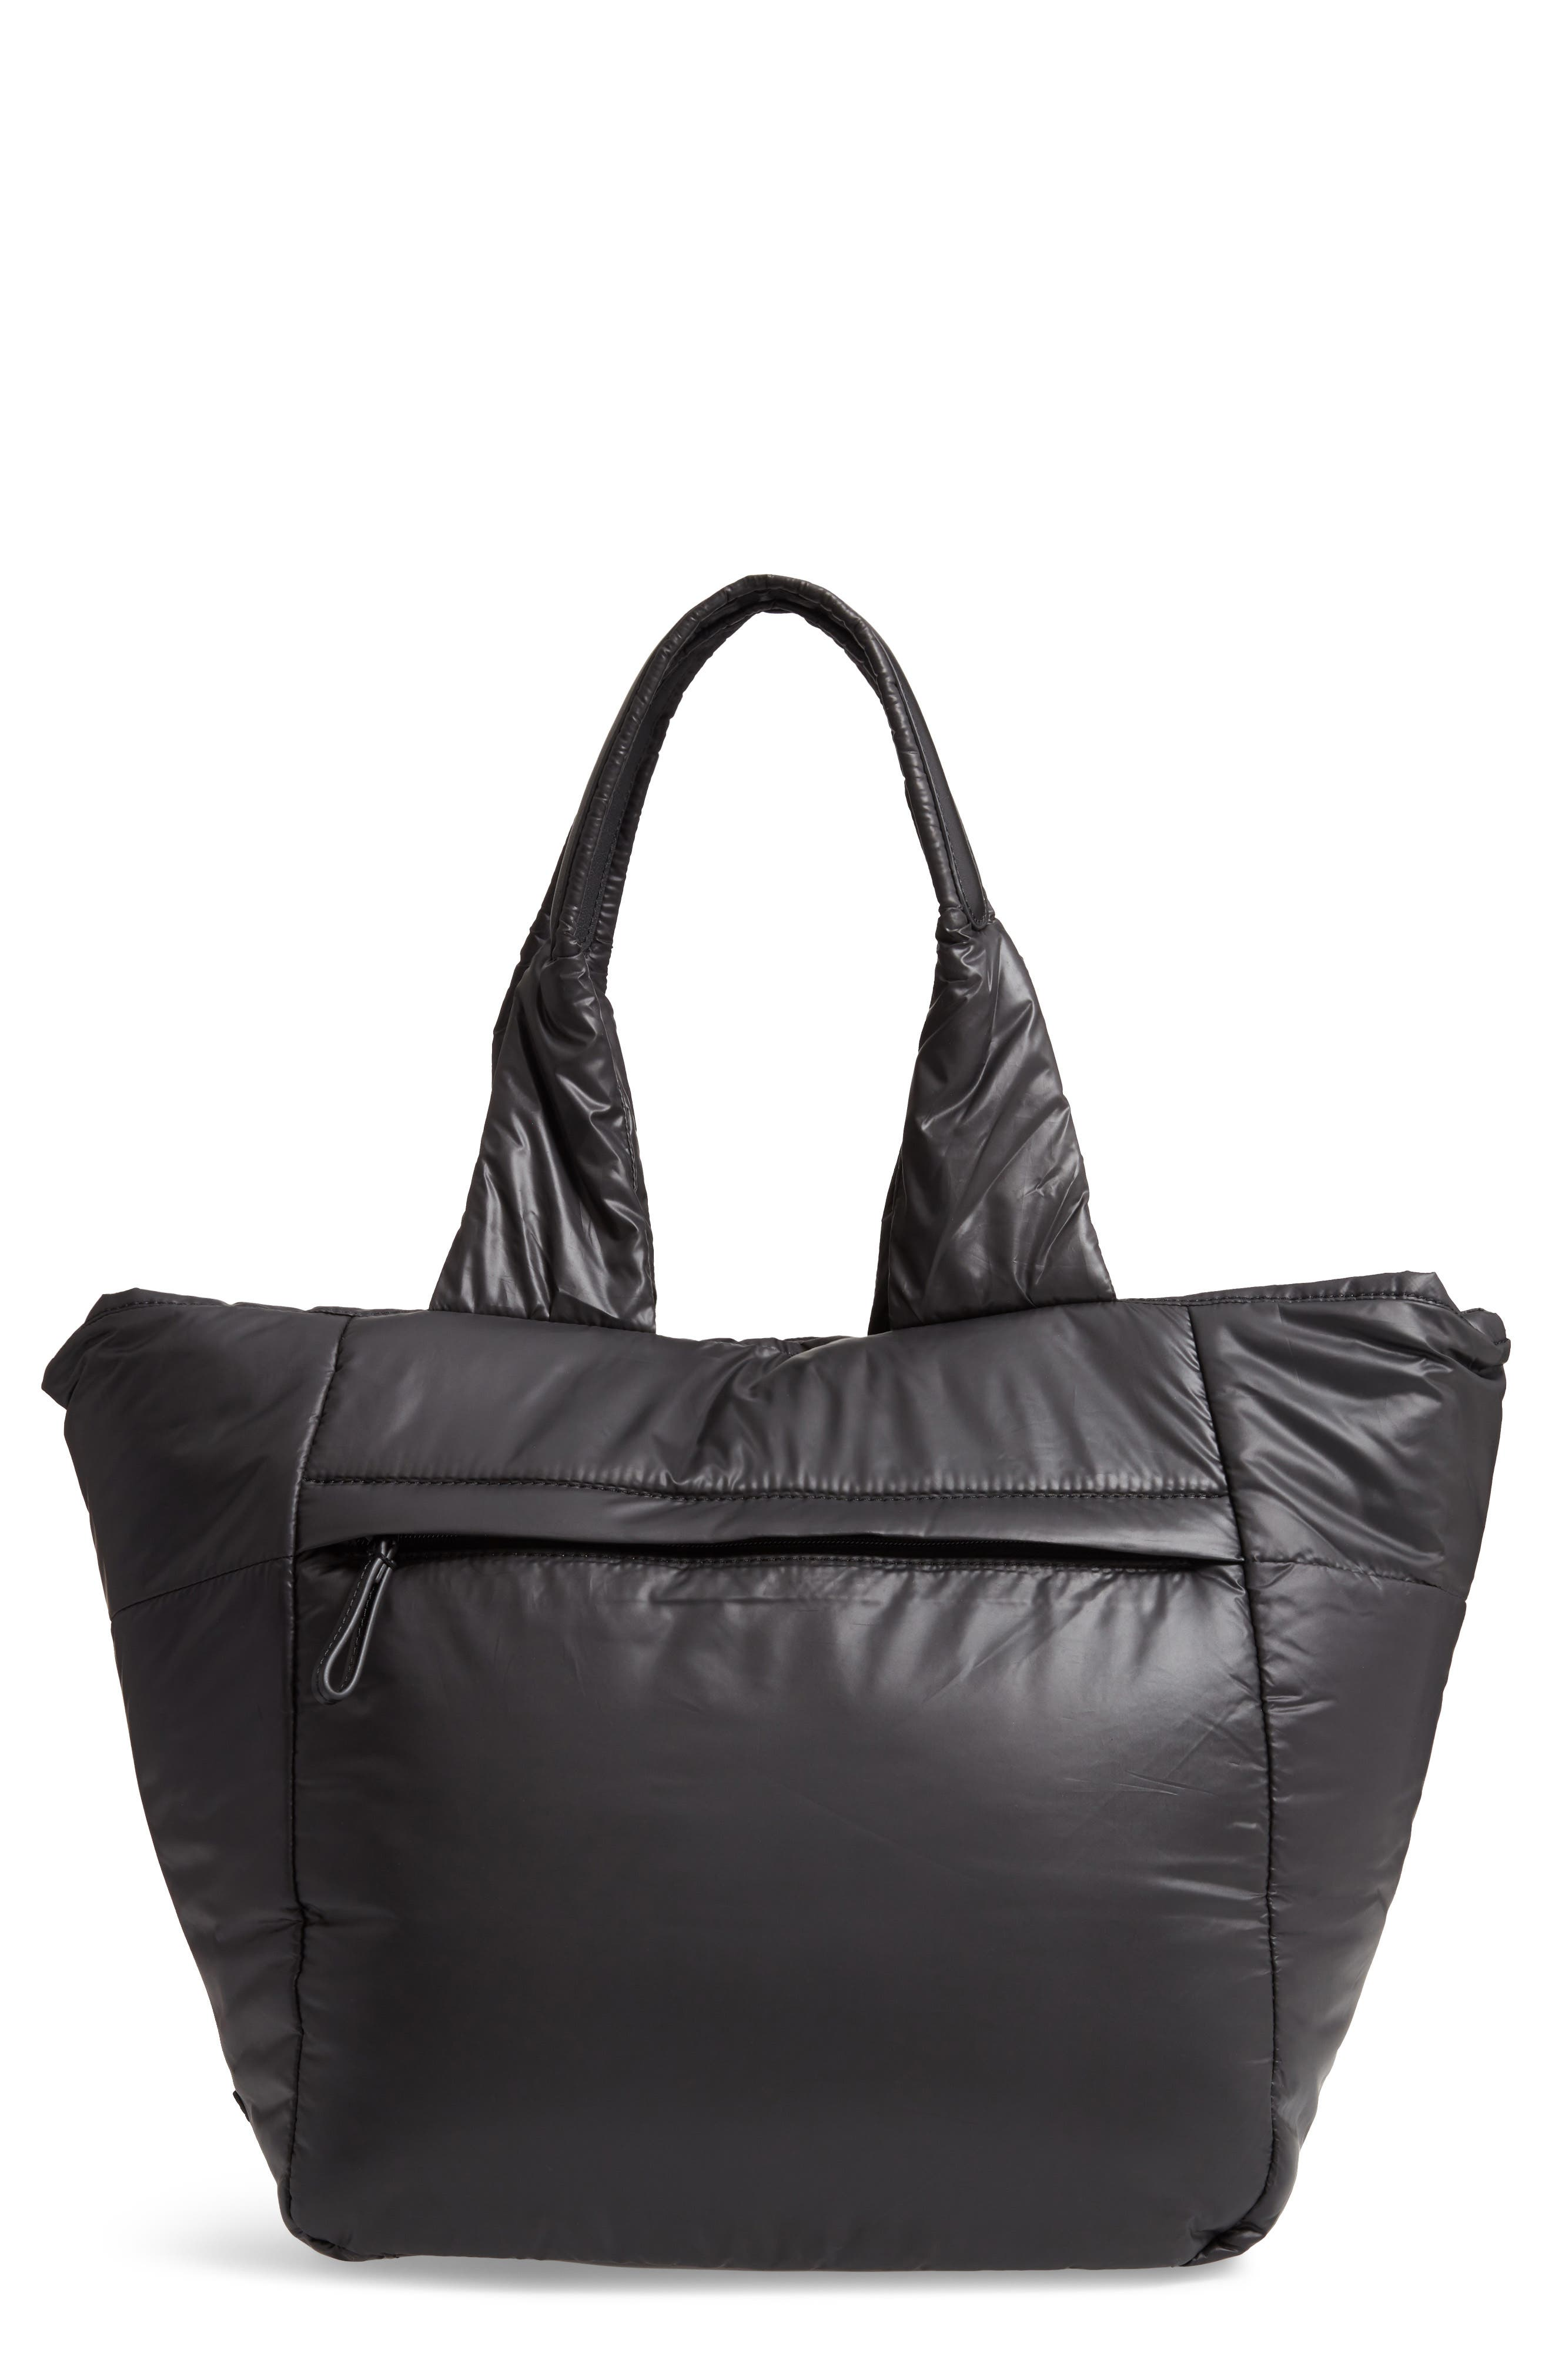 Cumulus Tote,                             Main thumbnail 1, color,                             BLACK